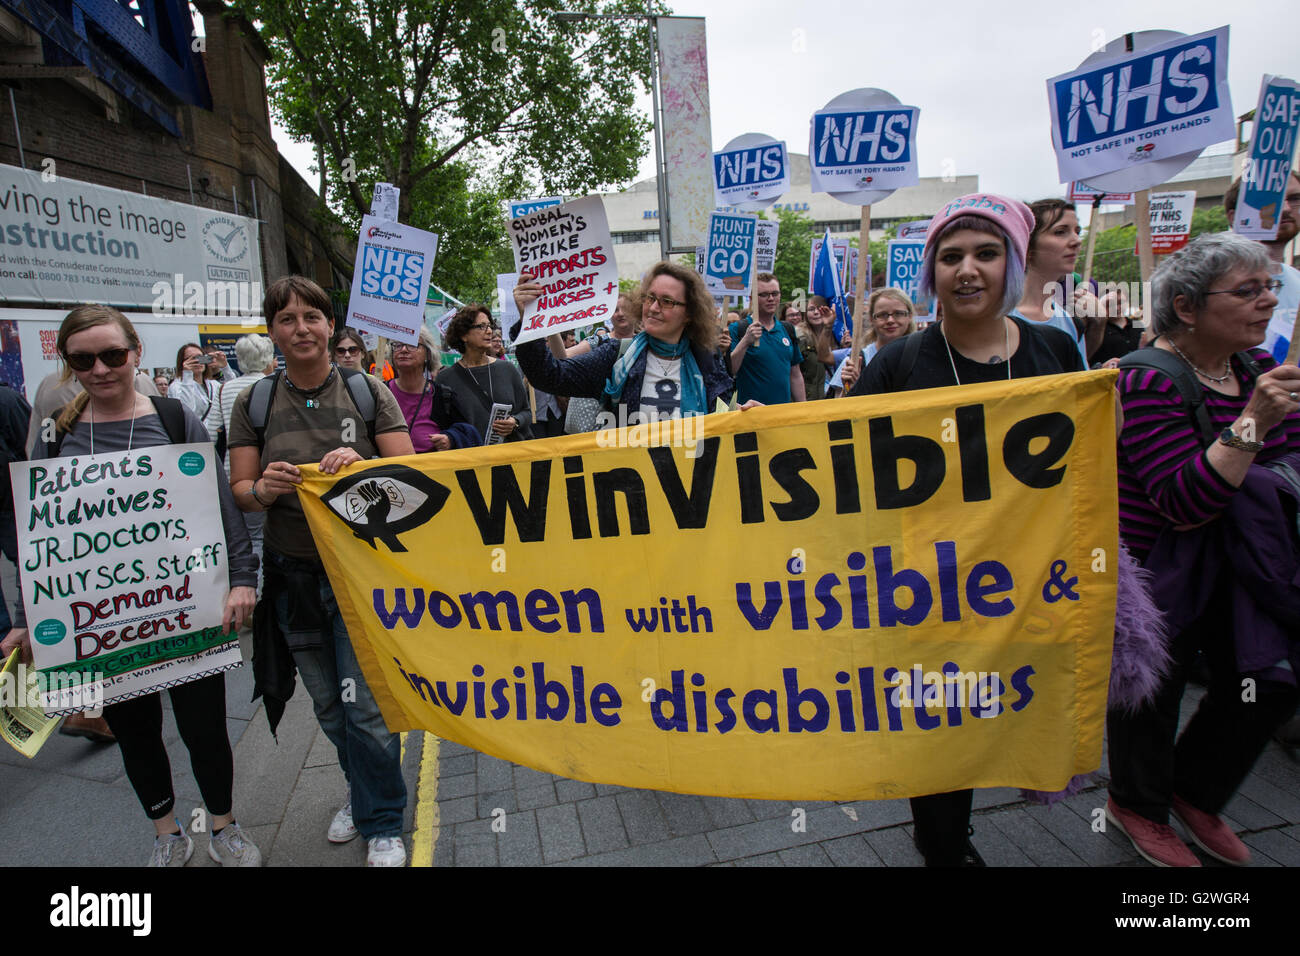 London, UK. 4 June 2016. Student nurses march in London to defend the NHS bursary.David Rowe/Alamy Live news. - Stock Image